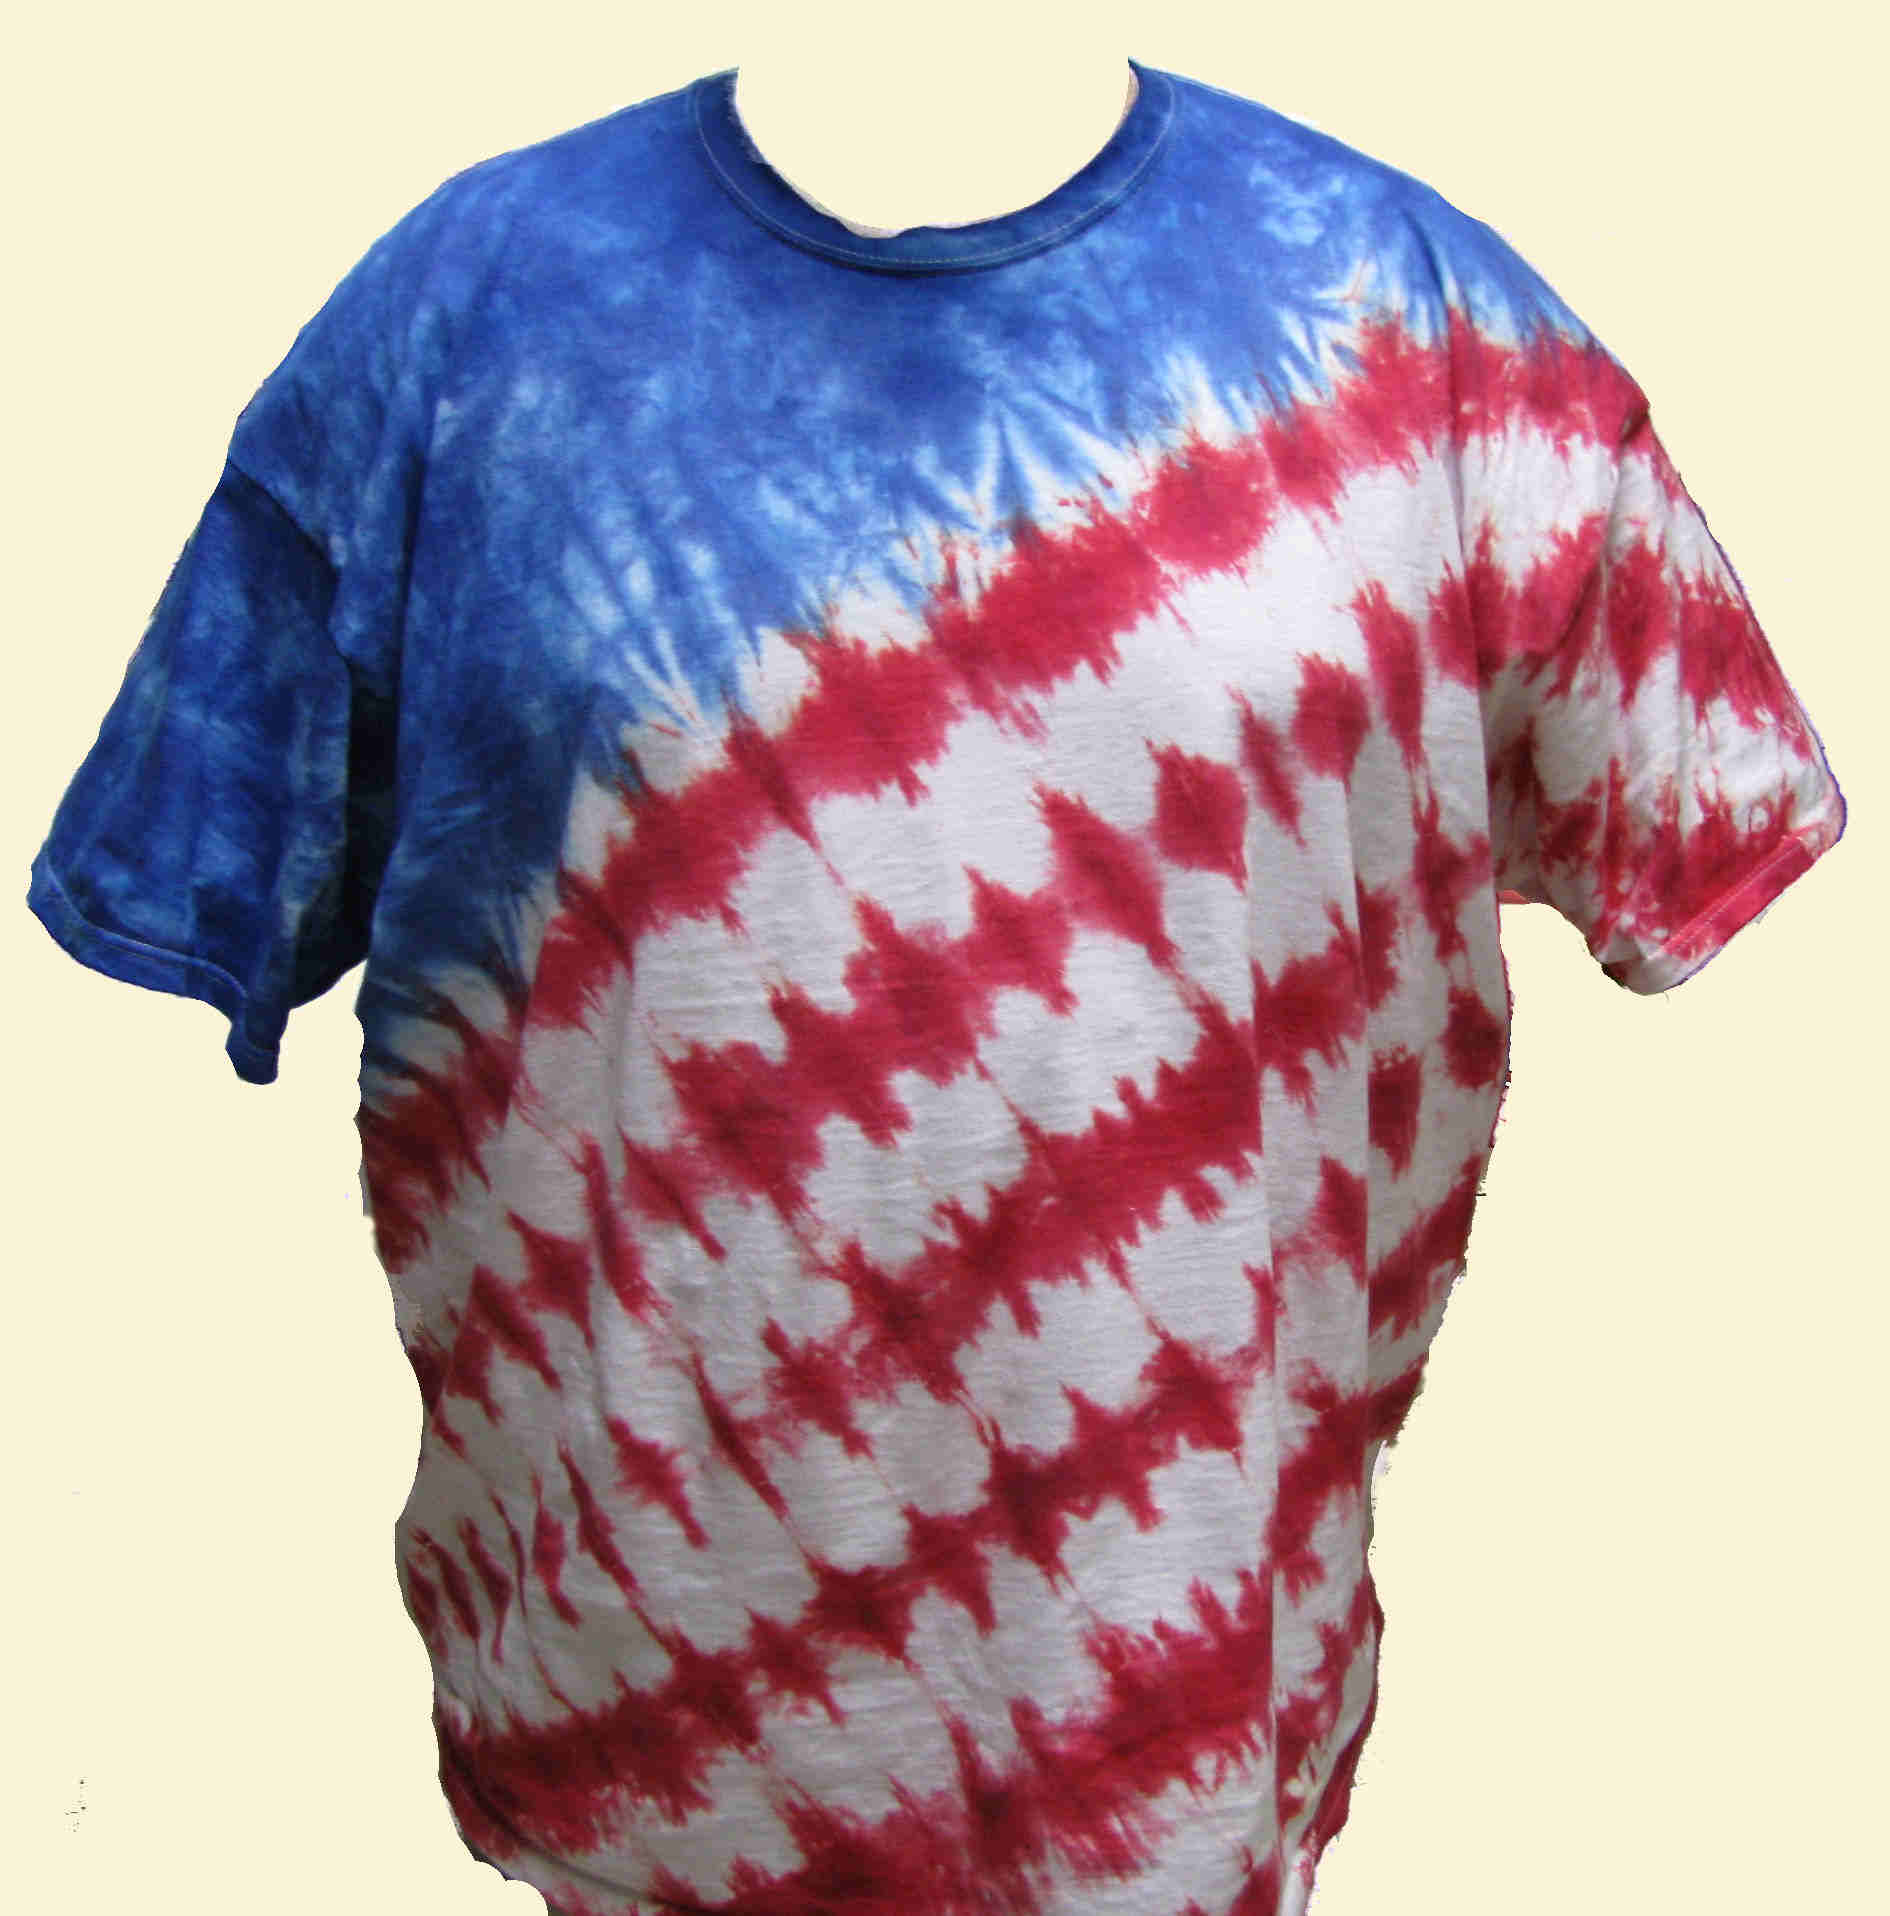 Wavy Flag Tie Dyed T-Shirt